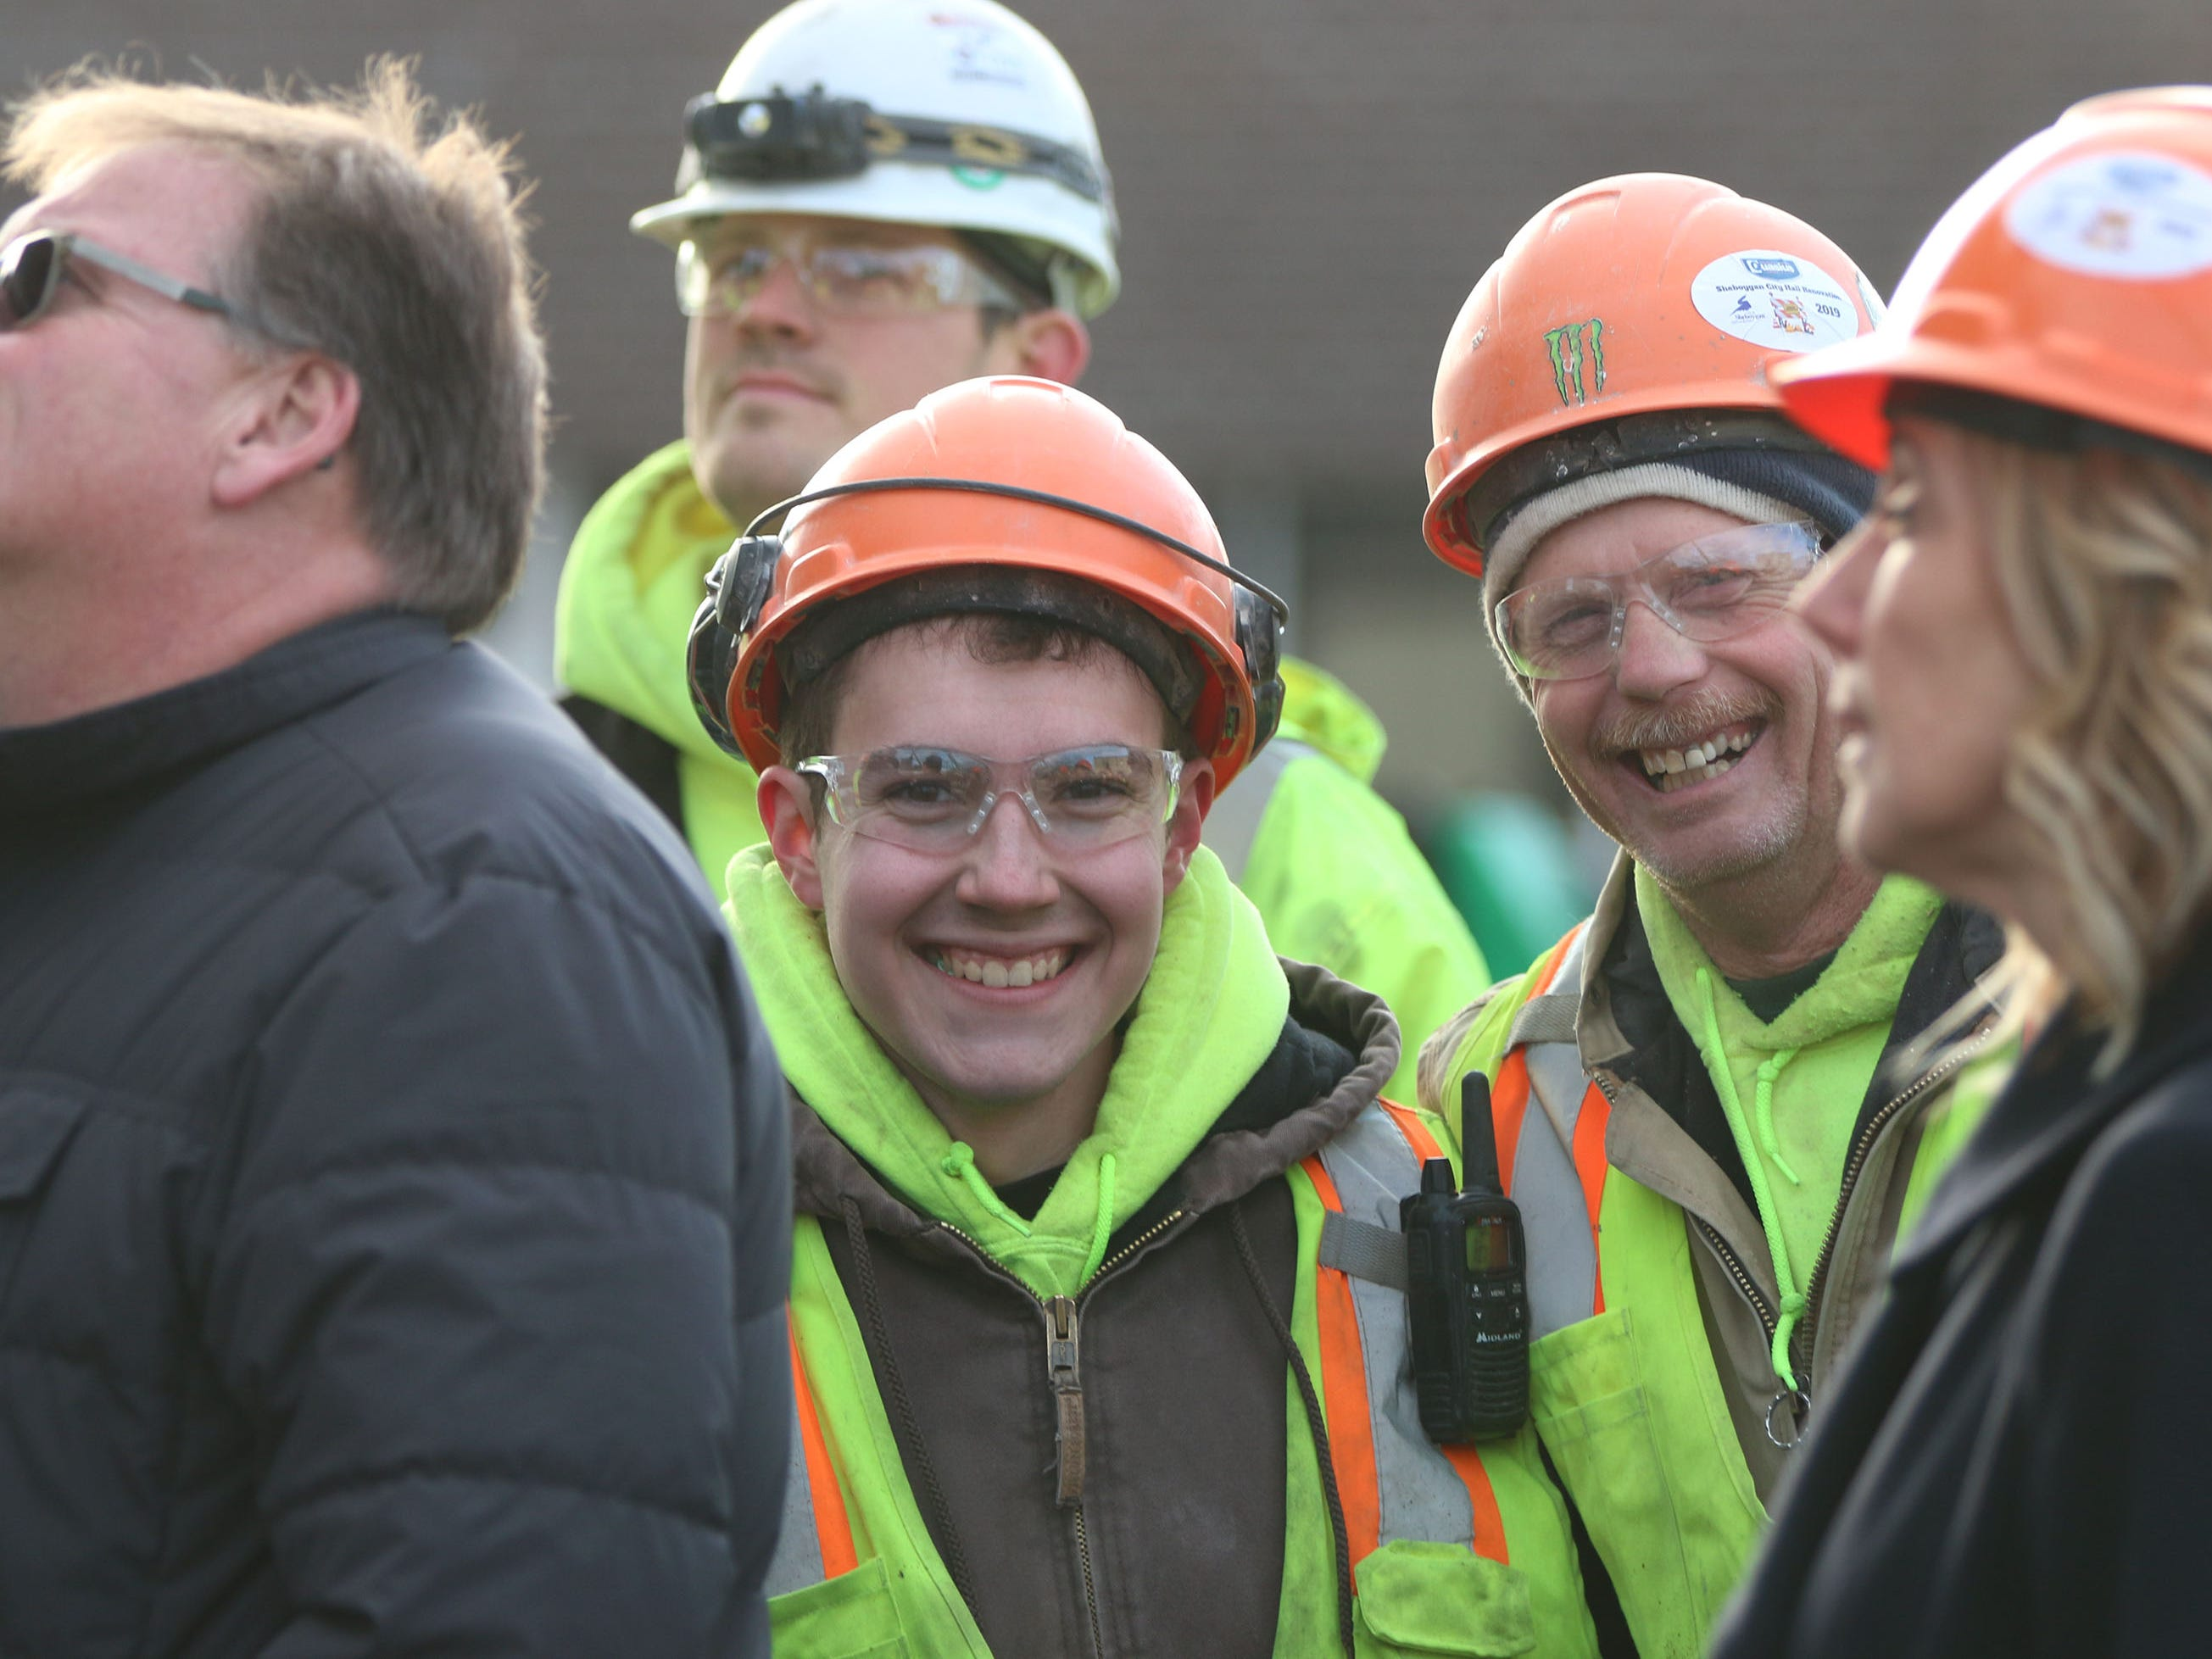 Construction workers smiles during the topping off ceremony for the Sheboygan City Hall renovation project, Wednesday, December 5, 2018, in Sheboygan, Wis.